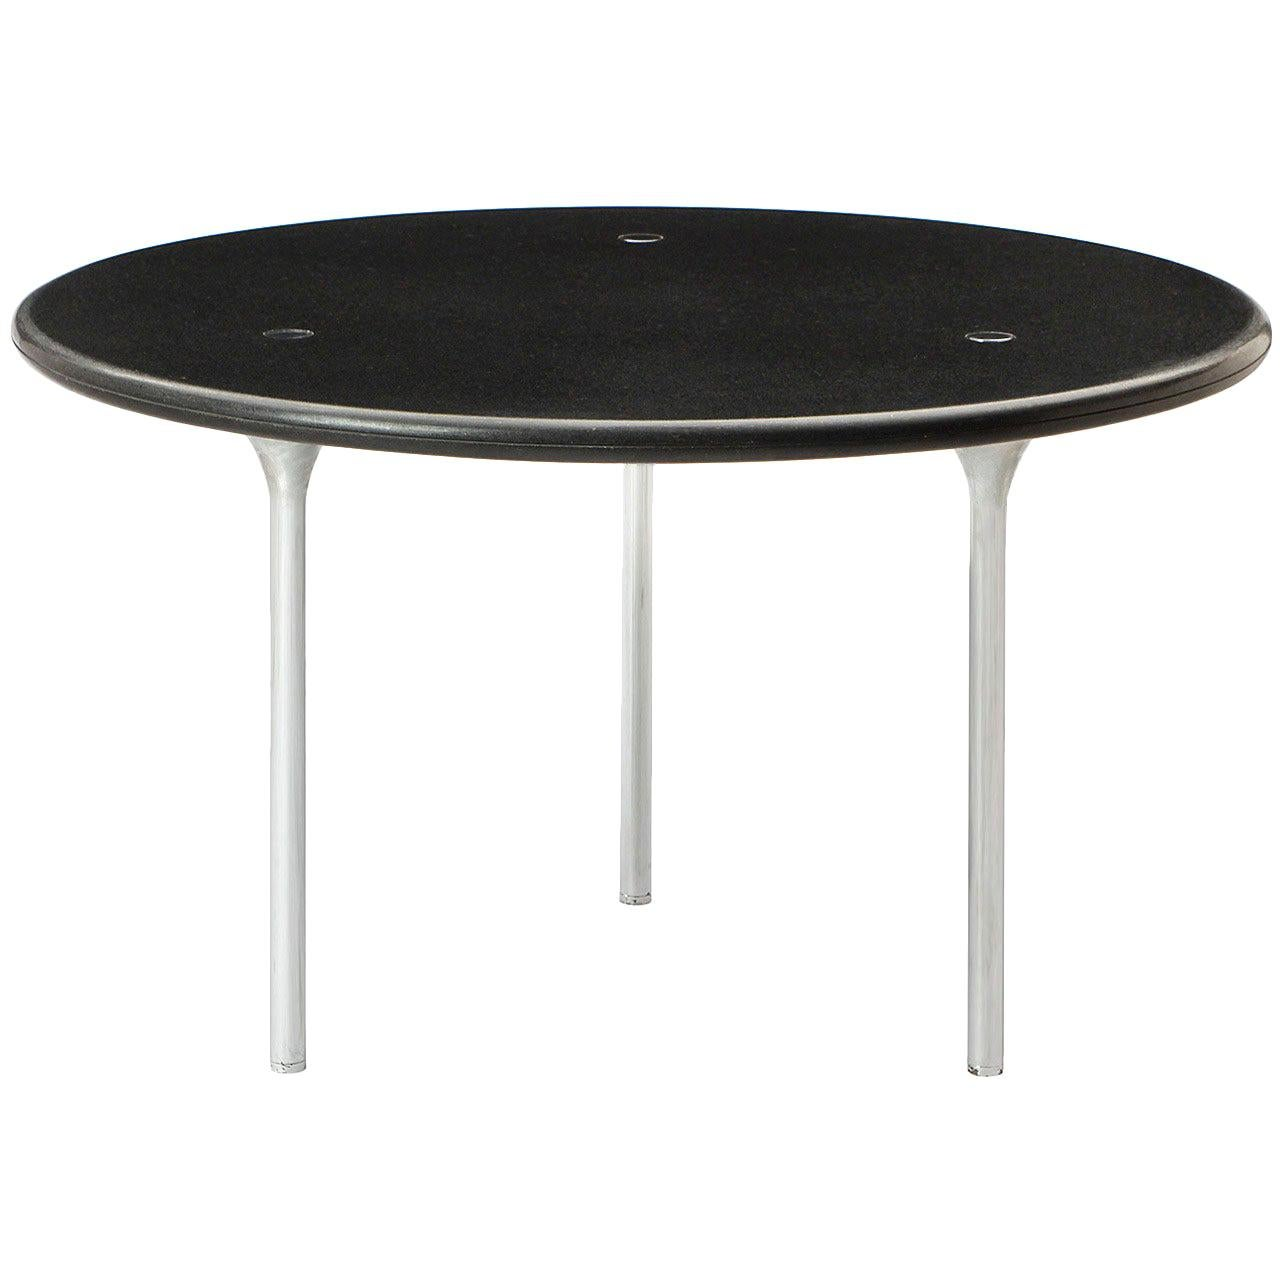 Circular Dining Table by Laverne International